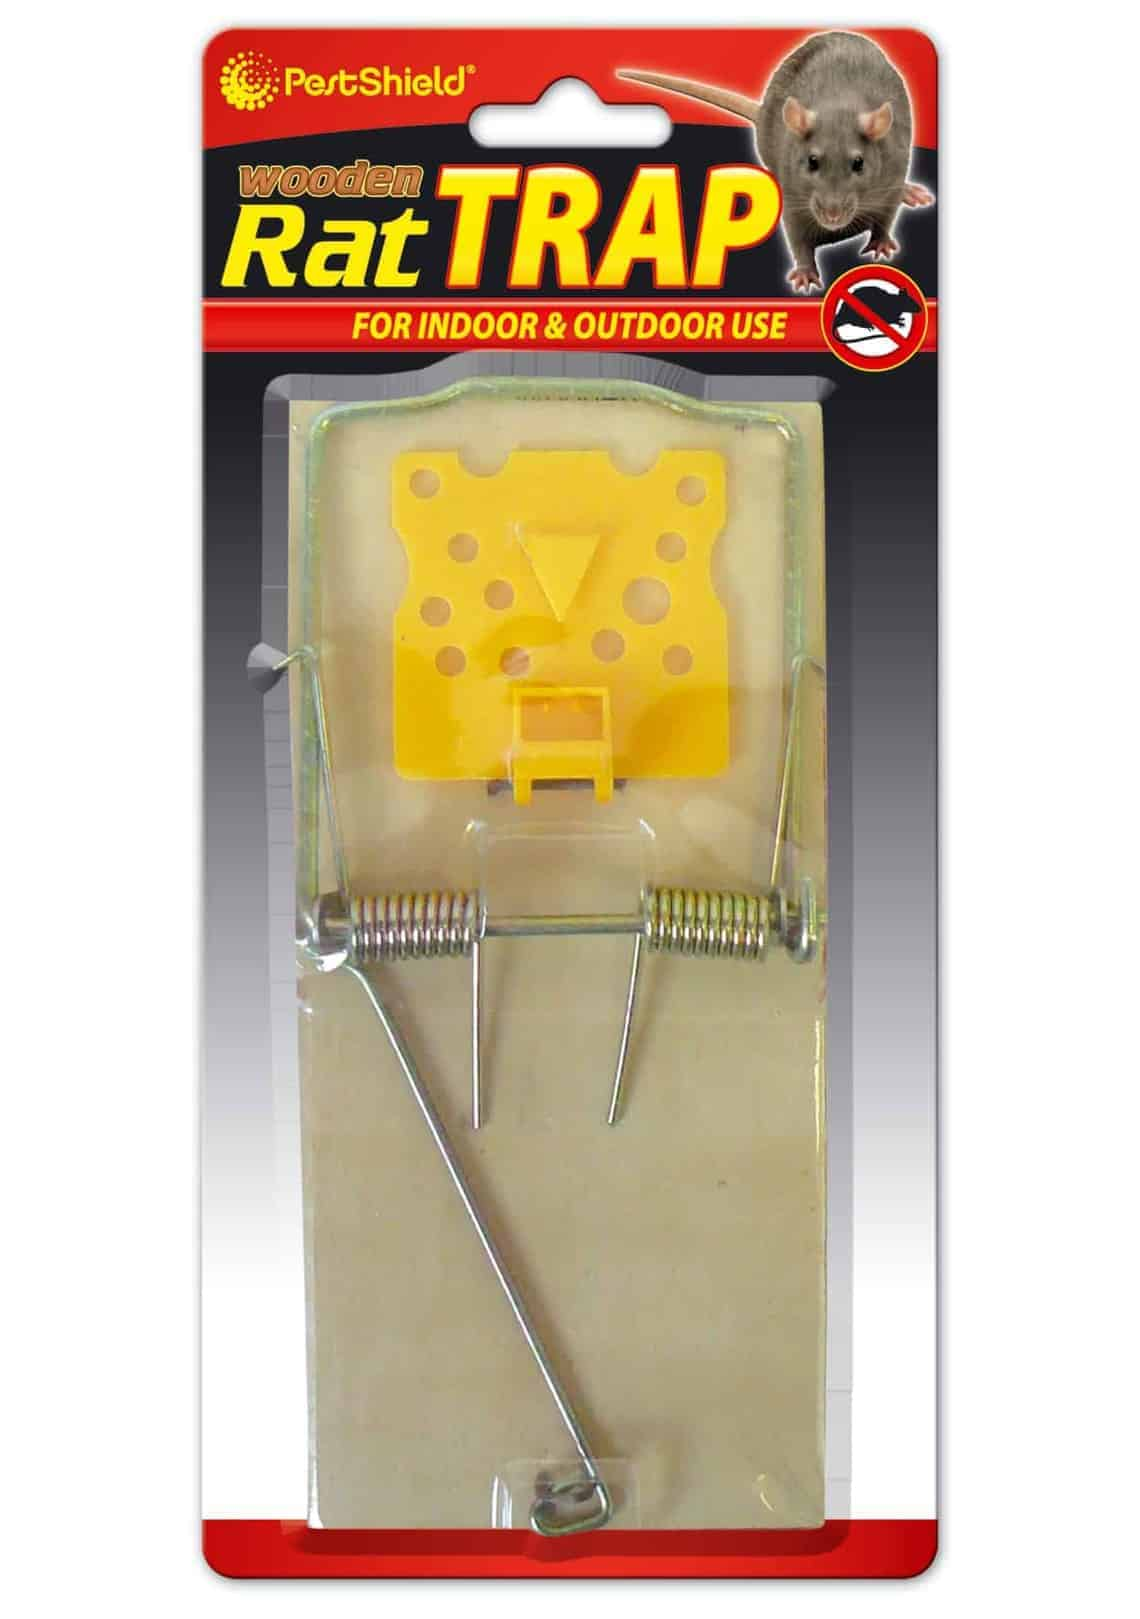 PestShield Rat Trap